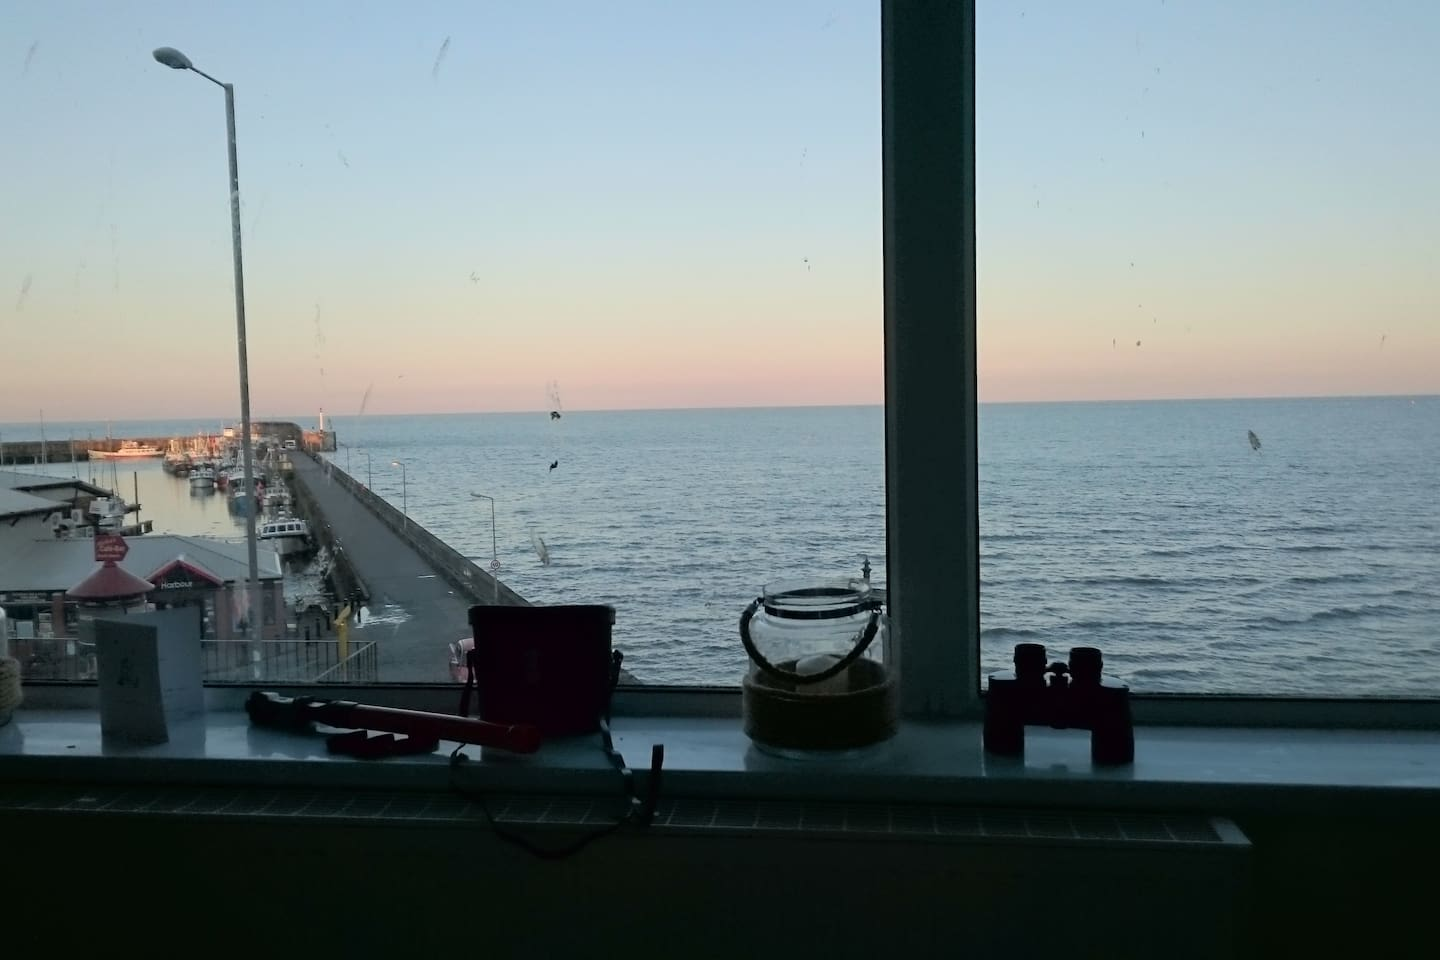 Sunsetting from the lounge